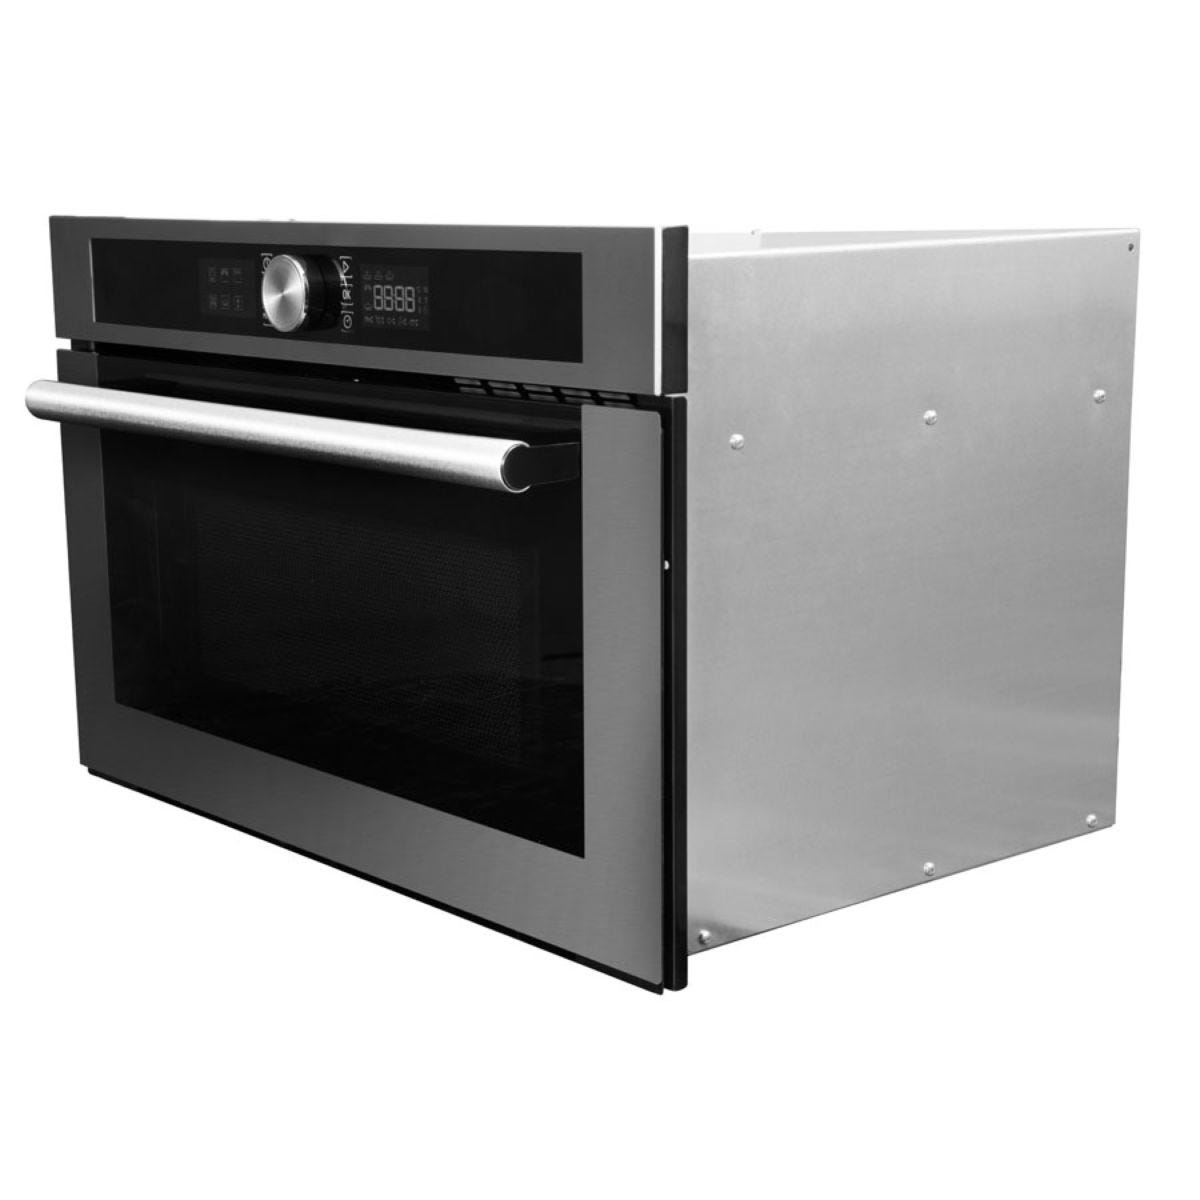 Hotpoint Md 454 Ix H Built in